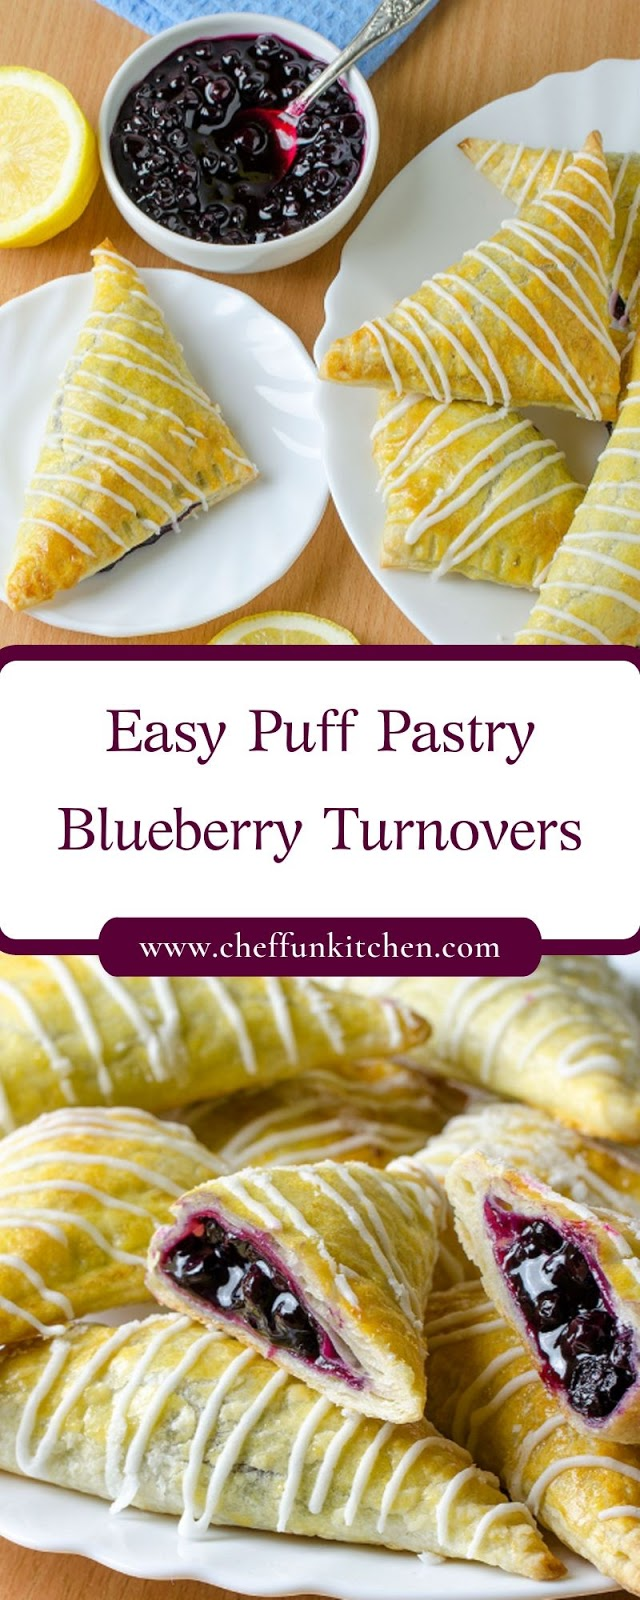 Easy Puff Pastry Blueberry Turnovers